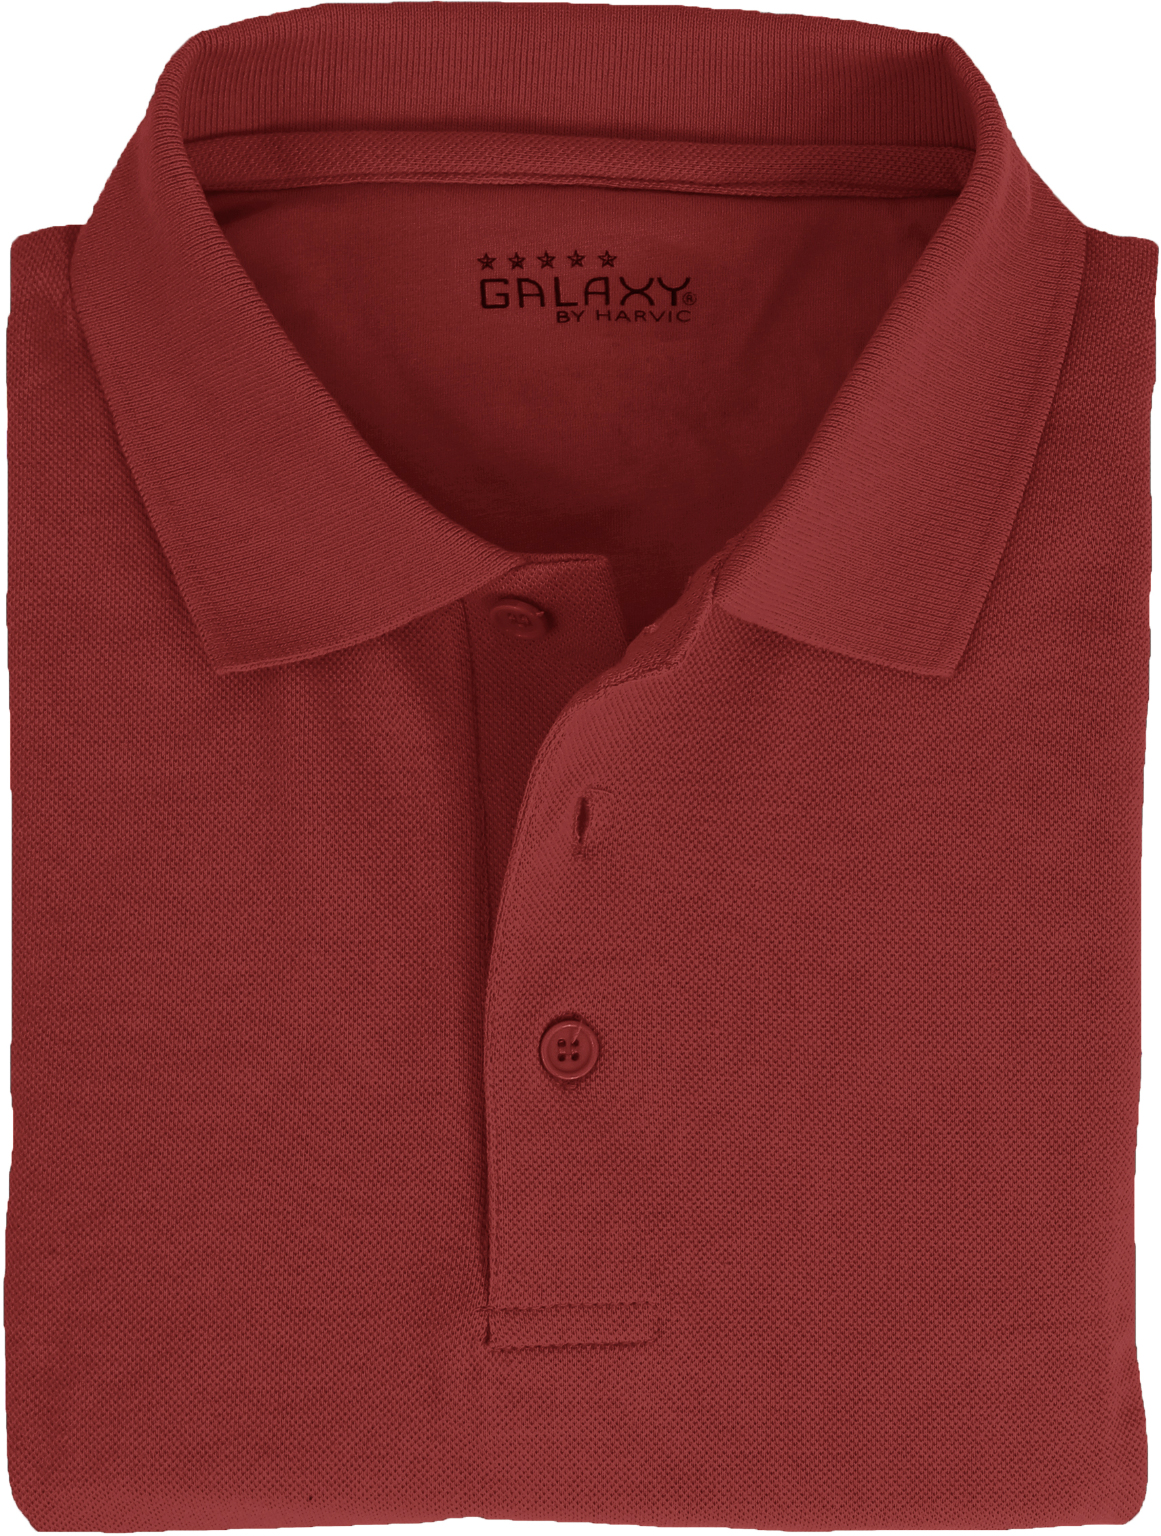 Wholesale Plus Size Adult Short Sleeve Burgundy Polo